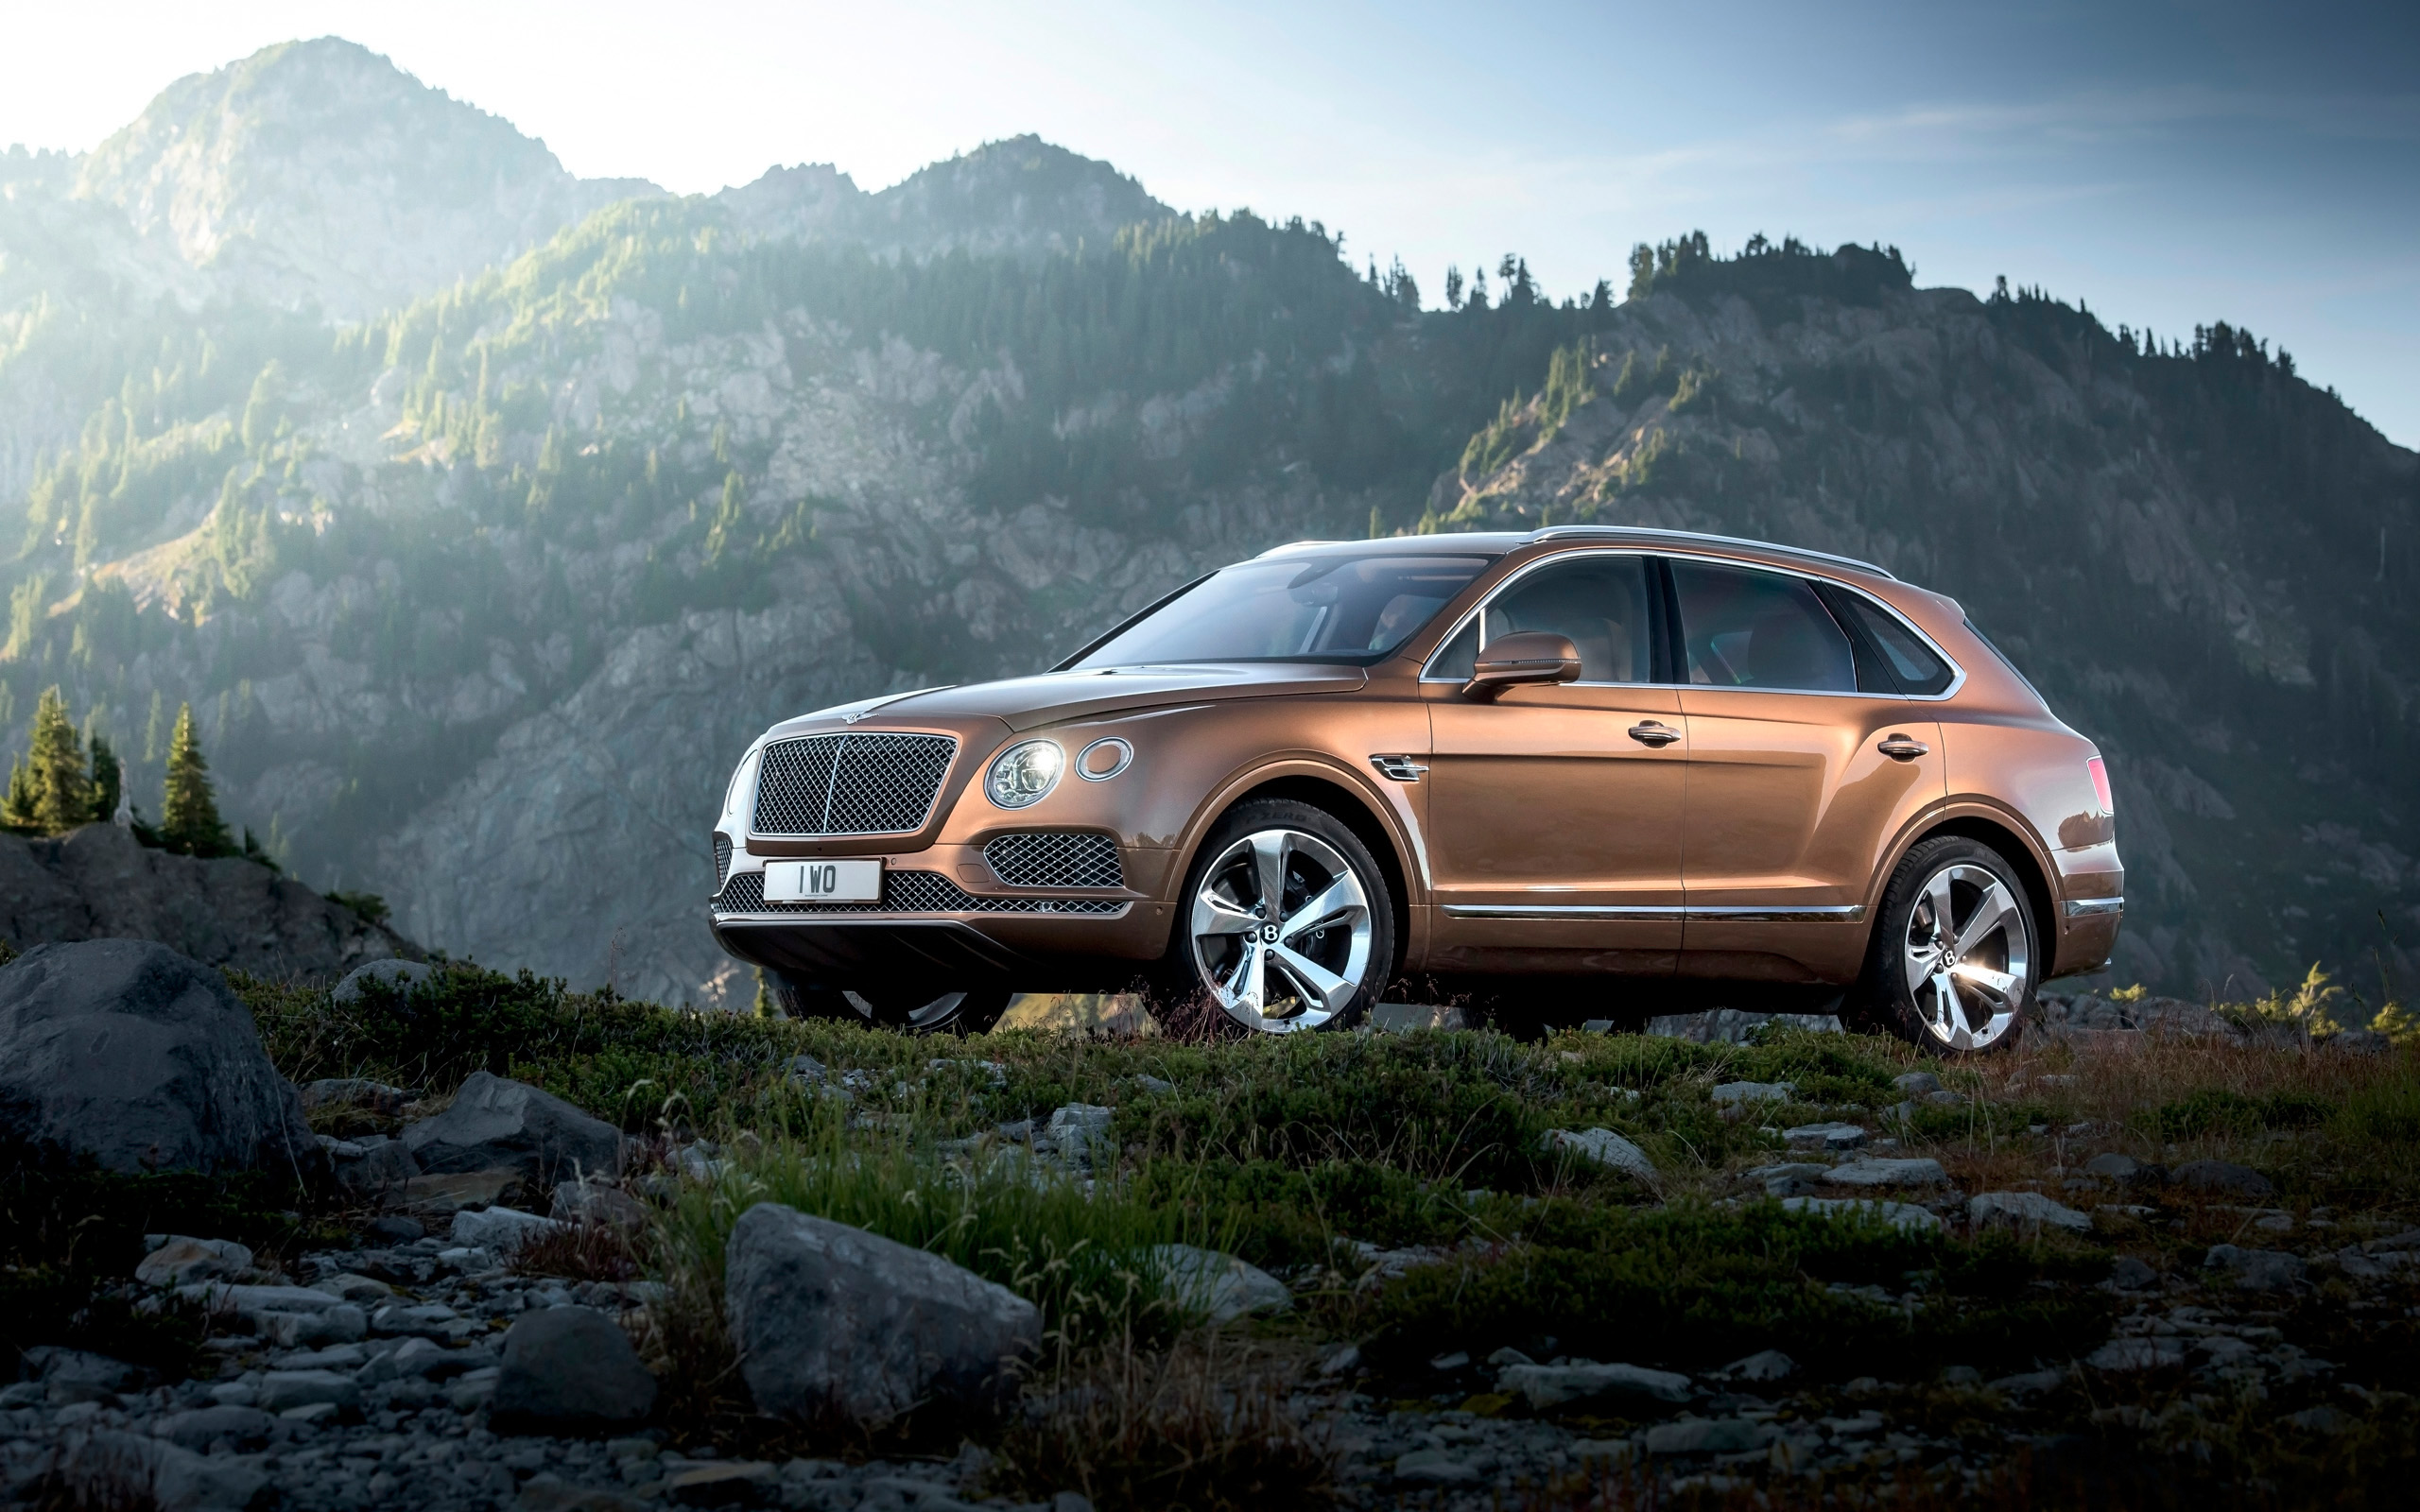 2016 Bentley Bentayga Wallpaper Hd Car Wallpapers